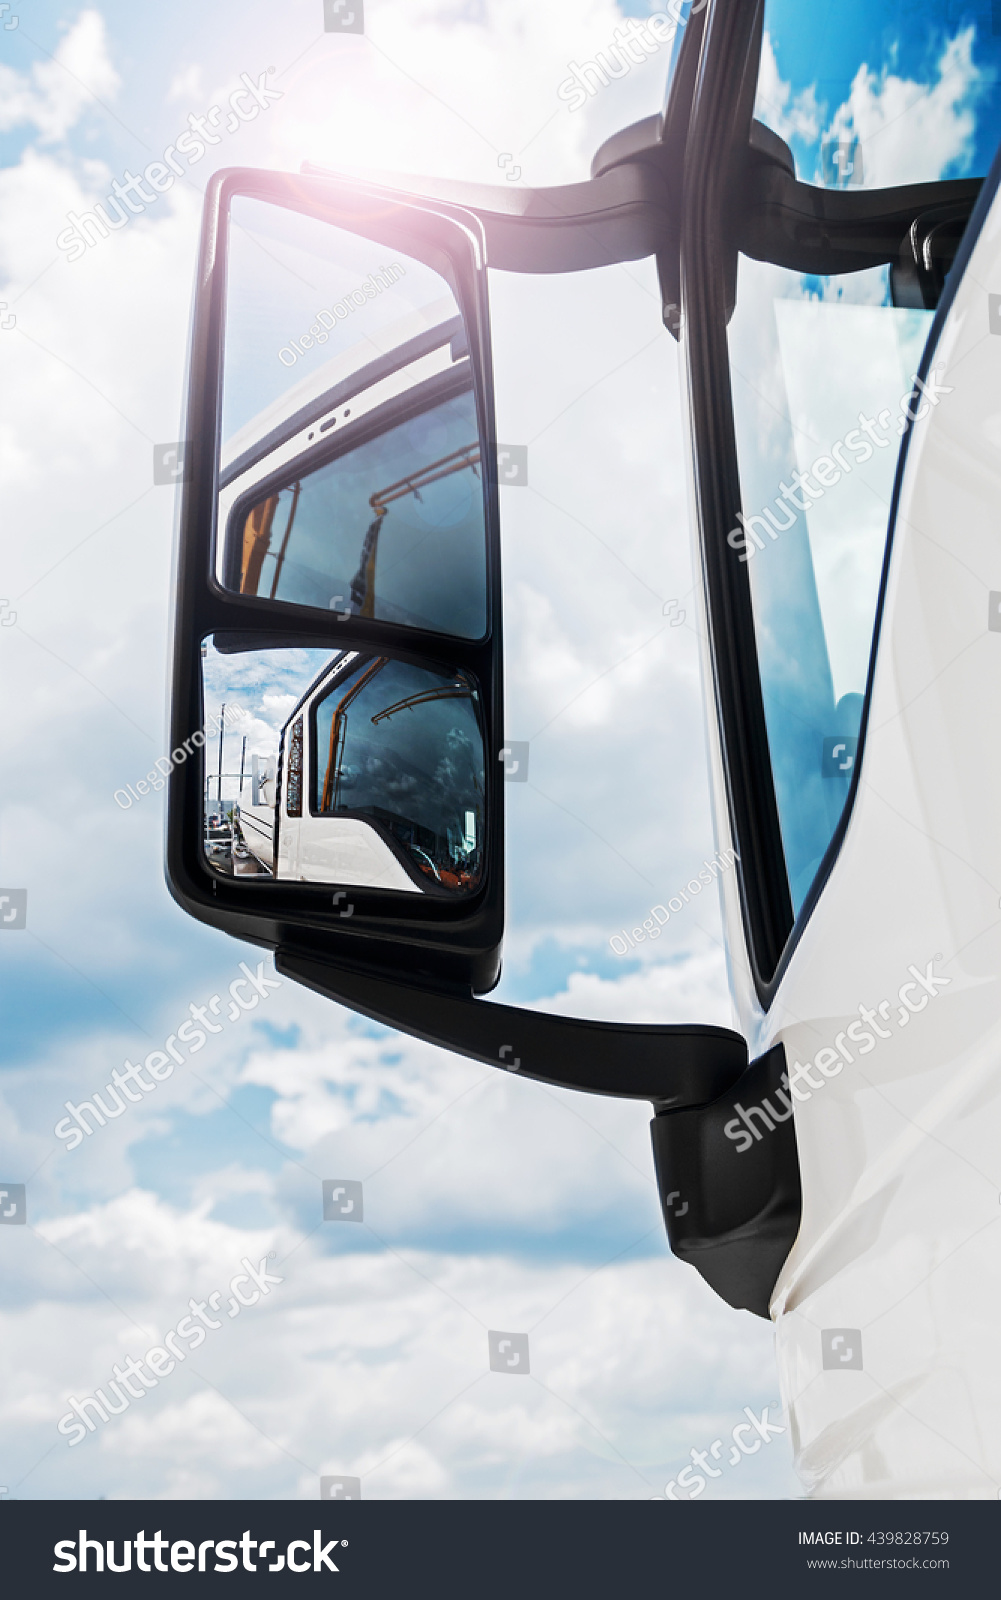 rear-view mirror on the truck sky reflected in rearview mirror focus on rear-view mirror